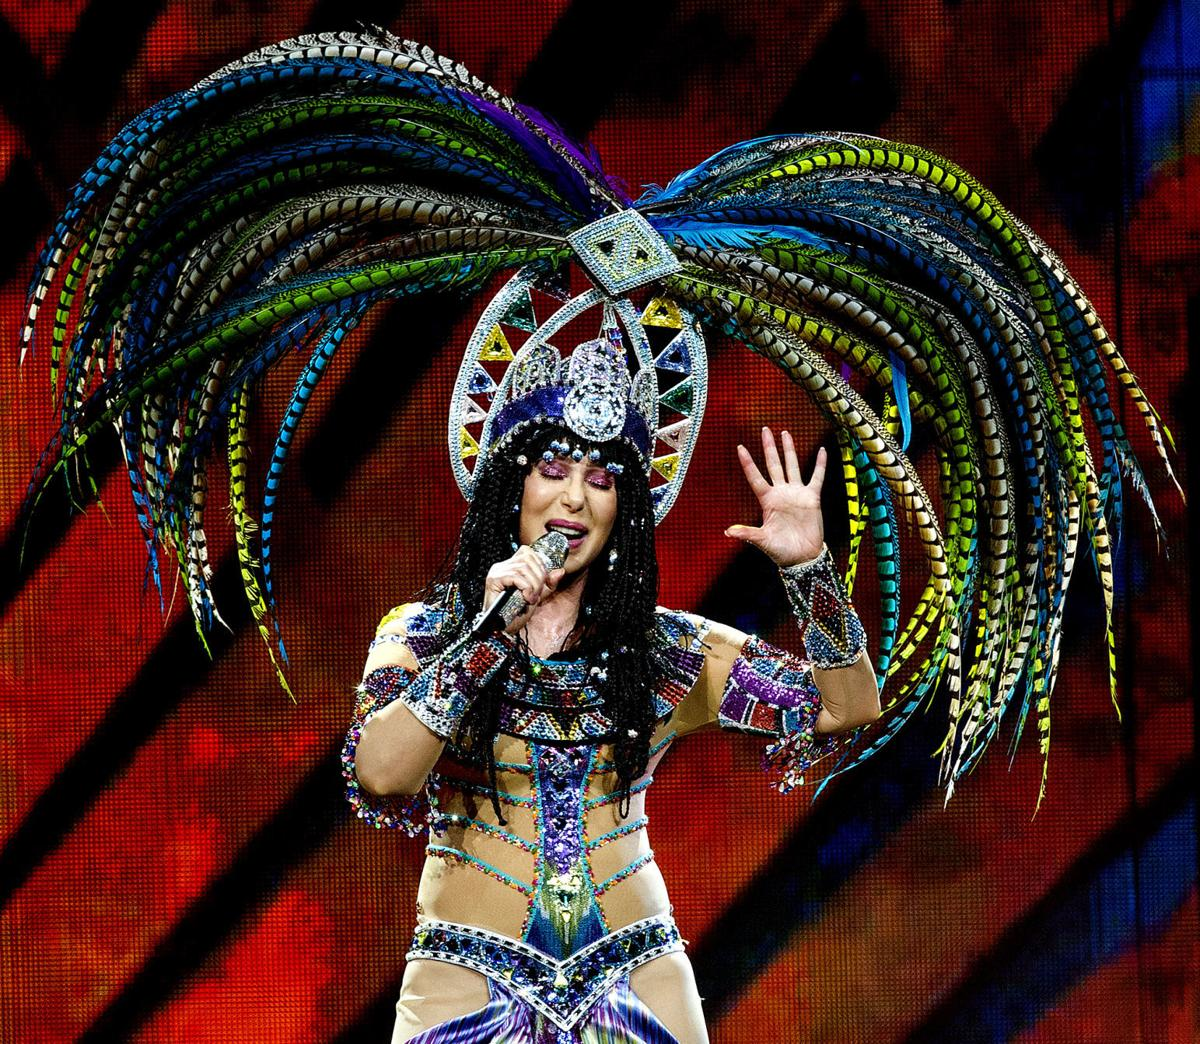 Consummate Entertainer Cher Has A Blast At Cool Omaha Concert